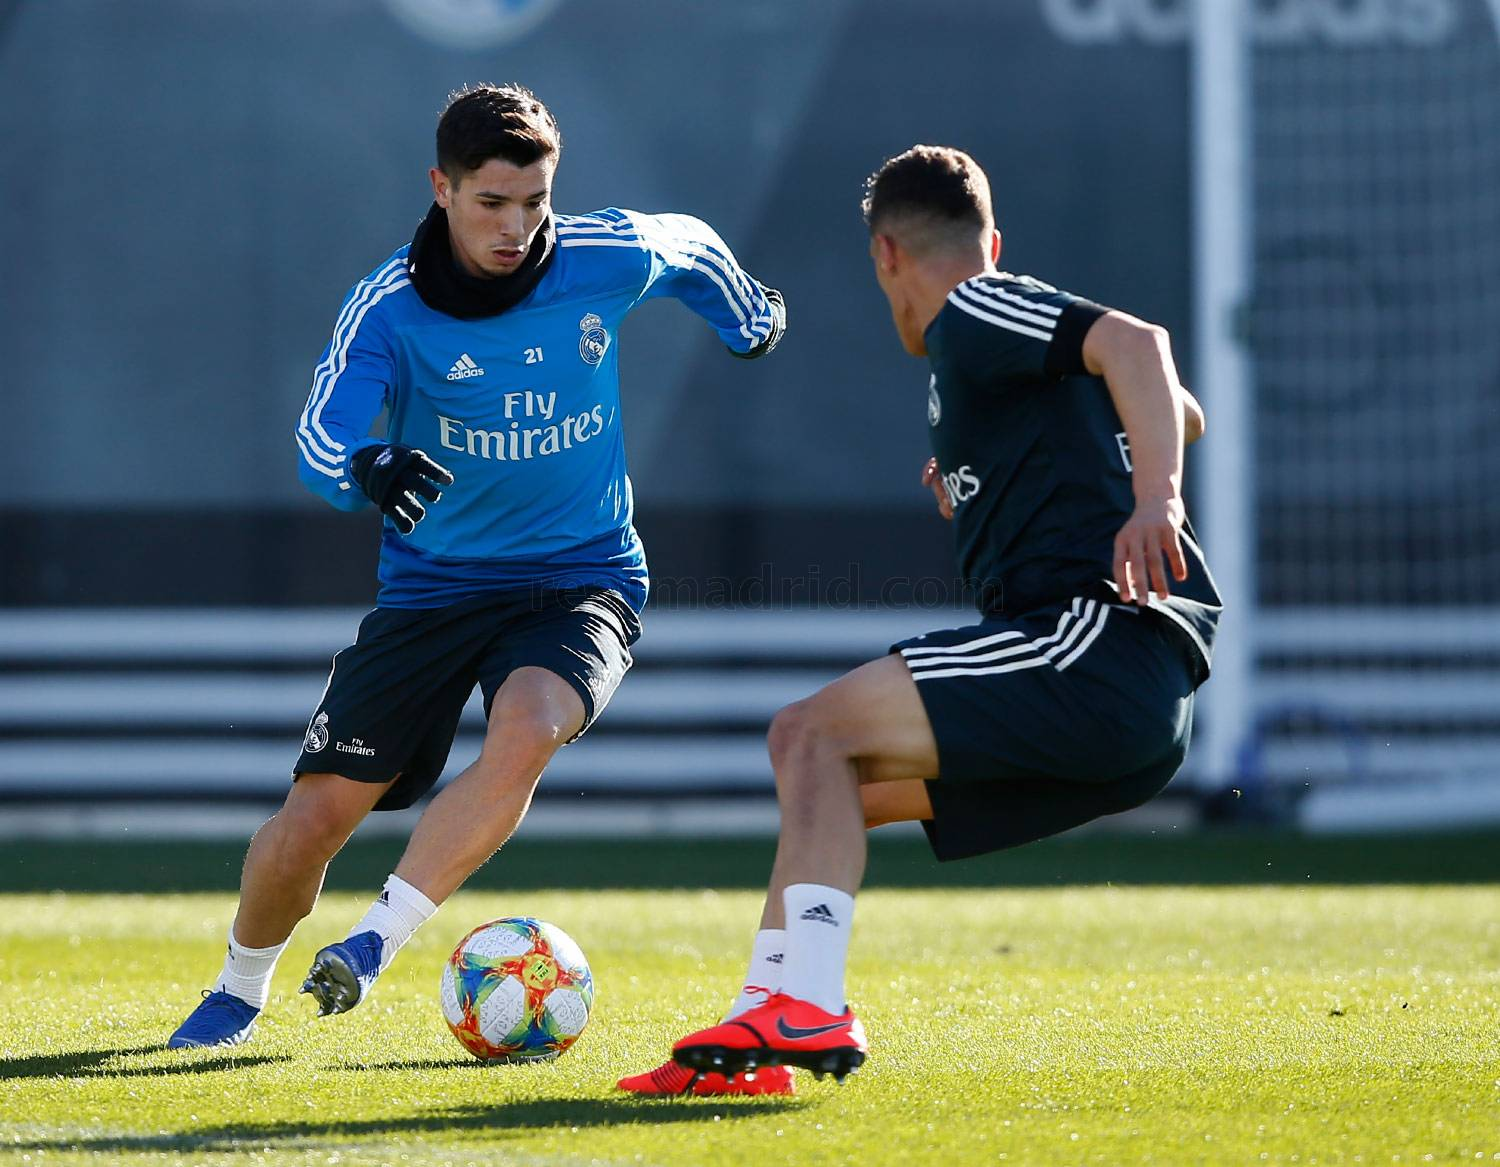 Real Madrid - Entrenamiento del Real Madrid - 28-01-2019